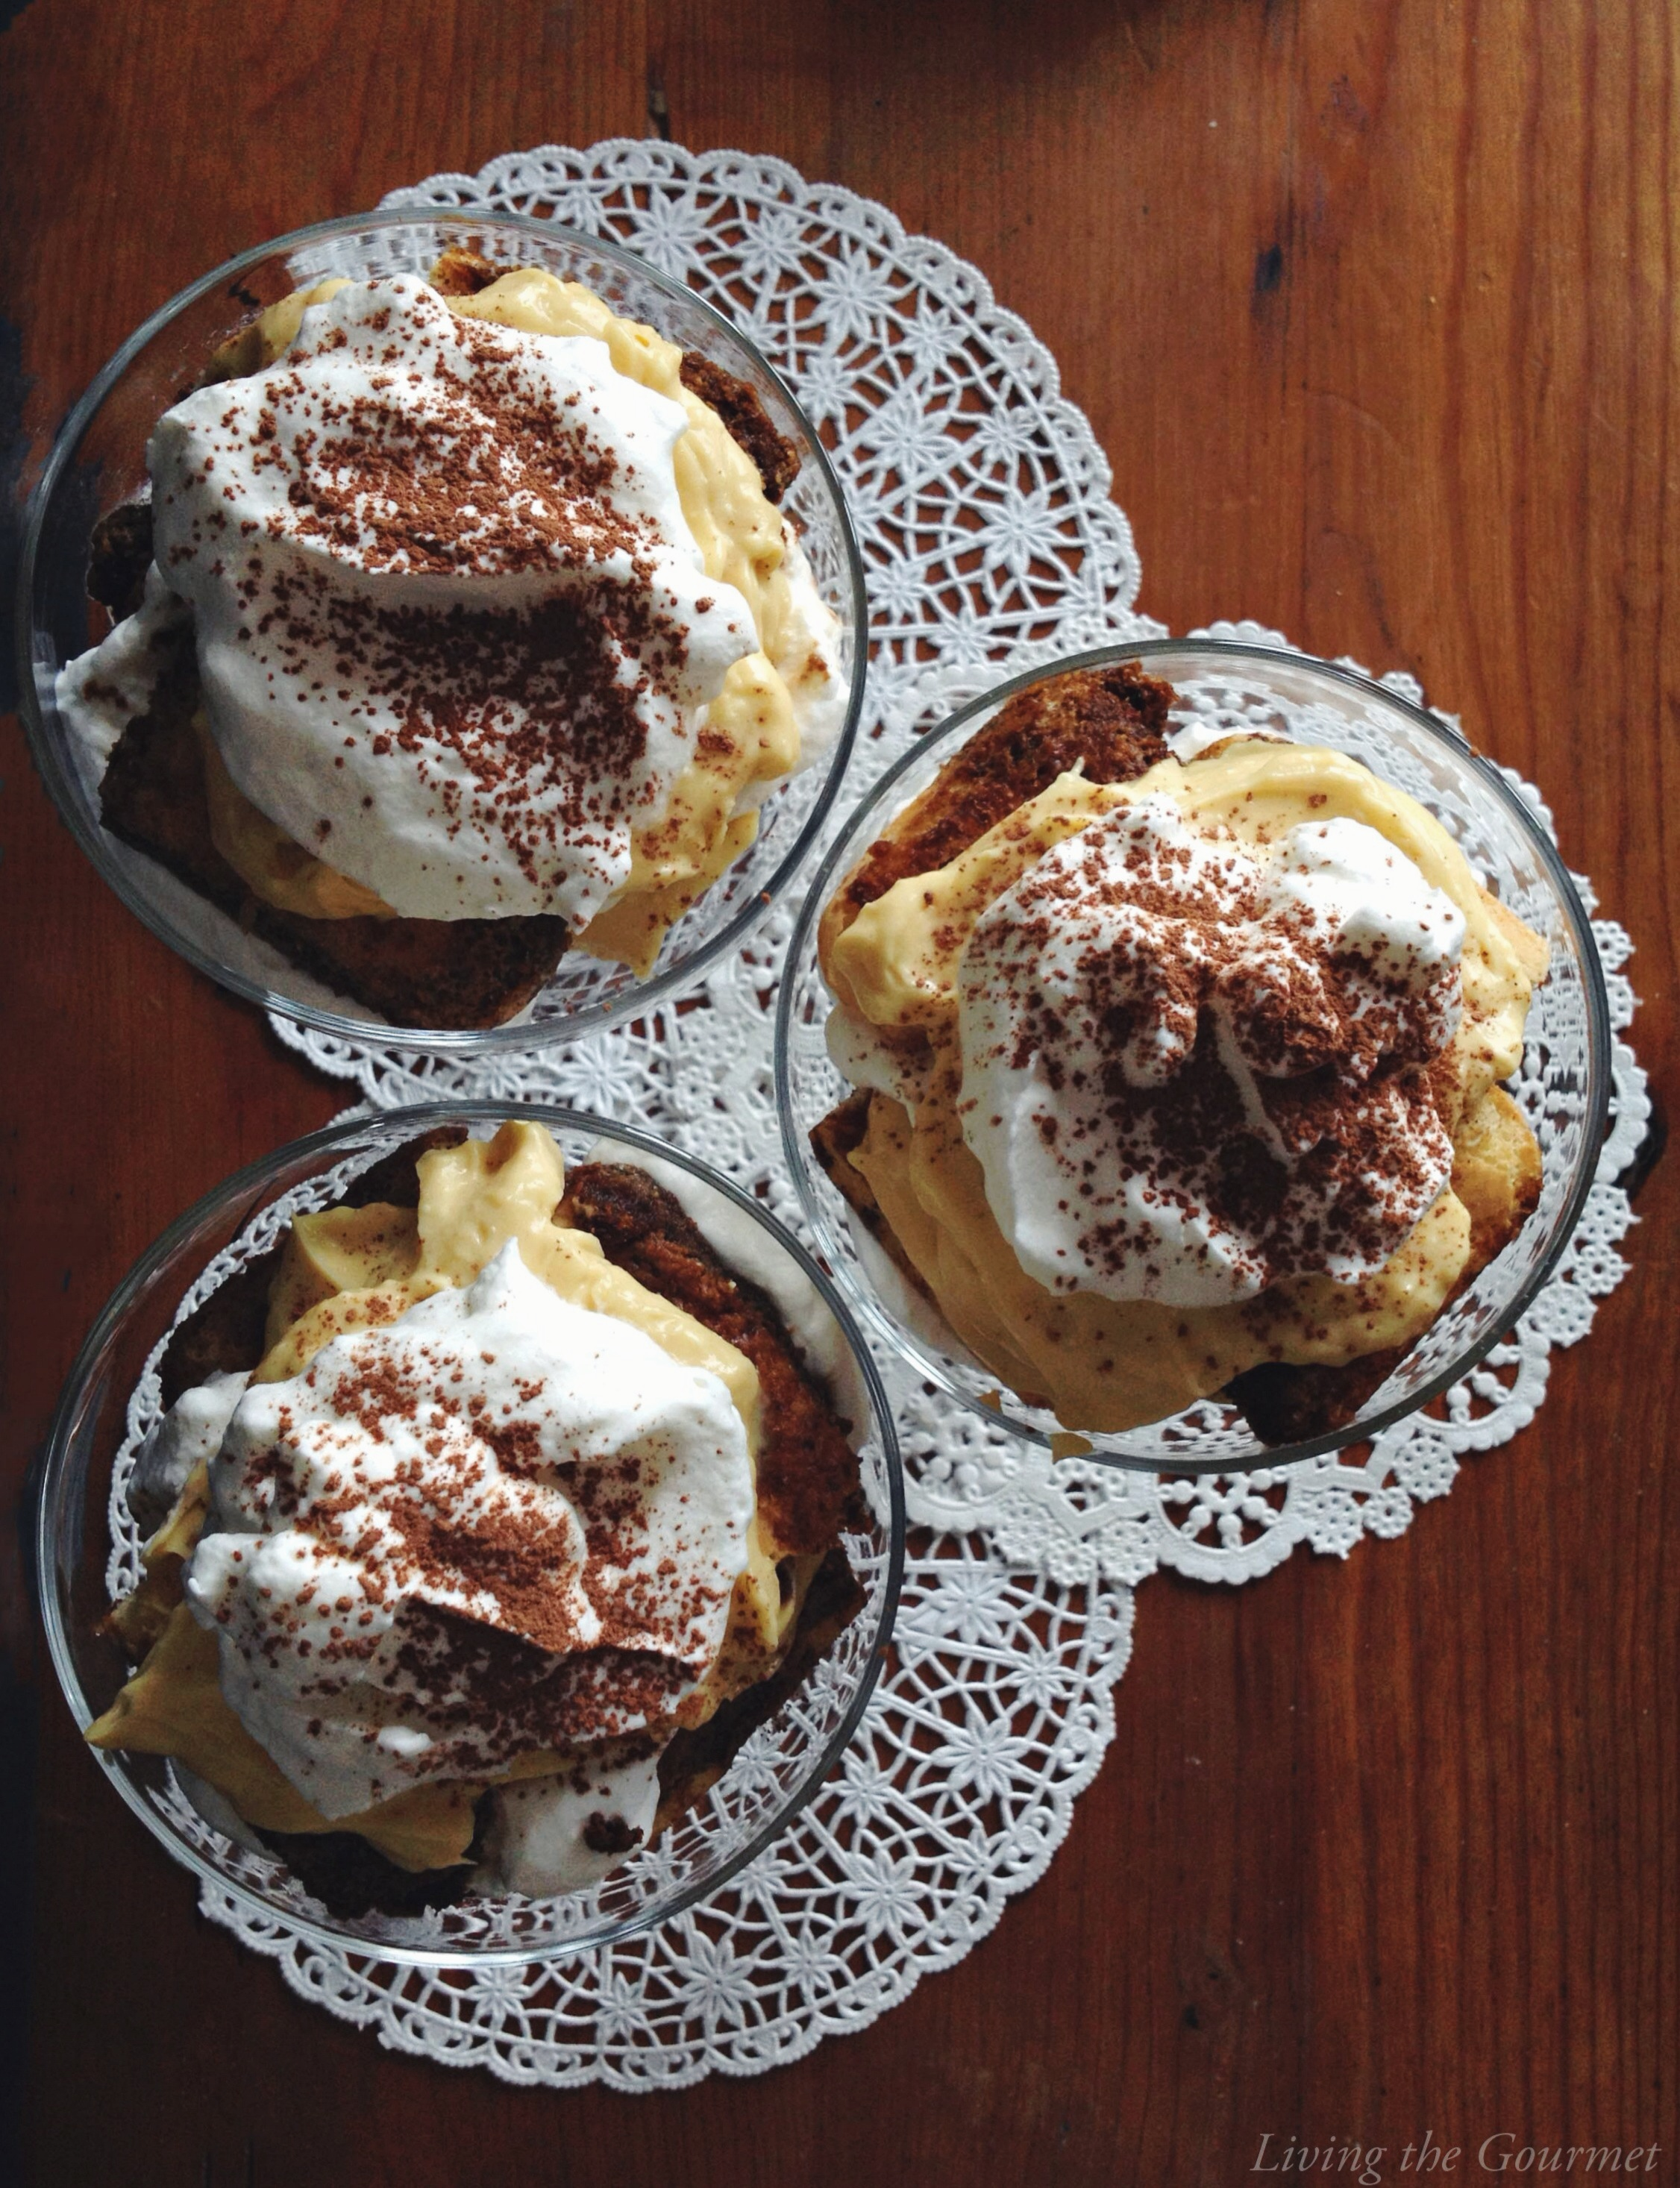 Living the Gourmet: Easy Tiramisu